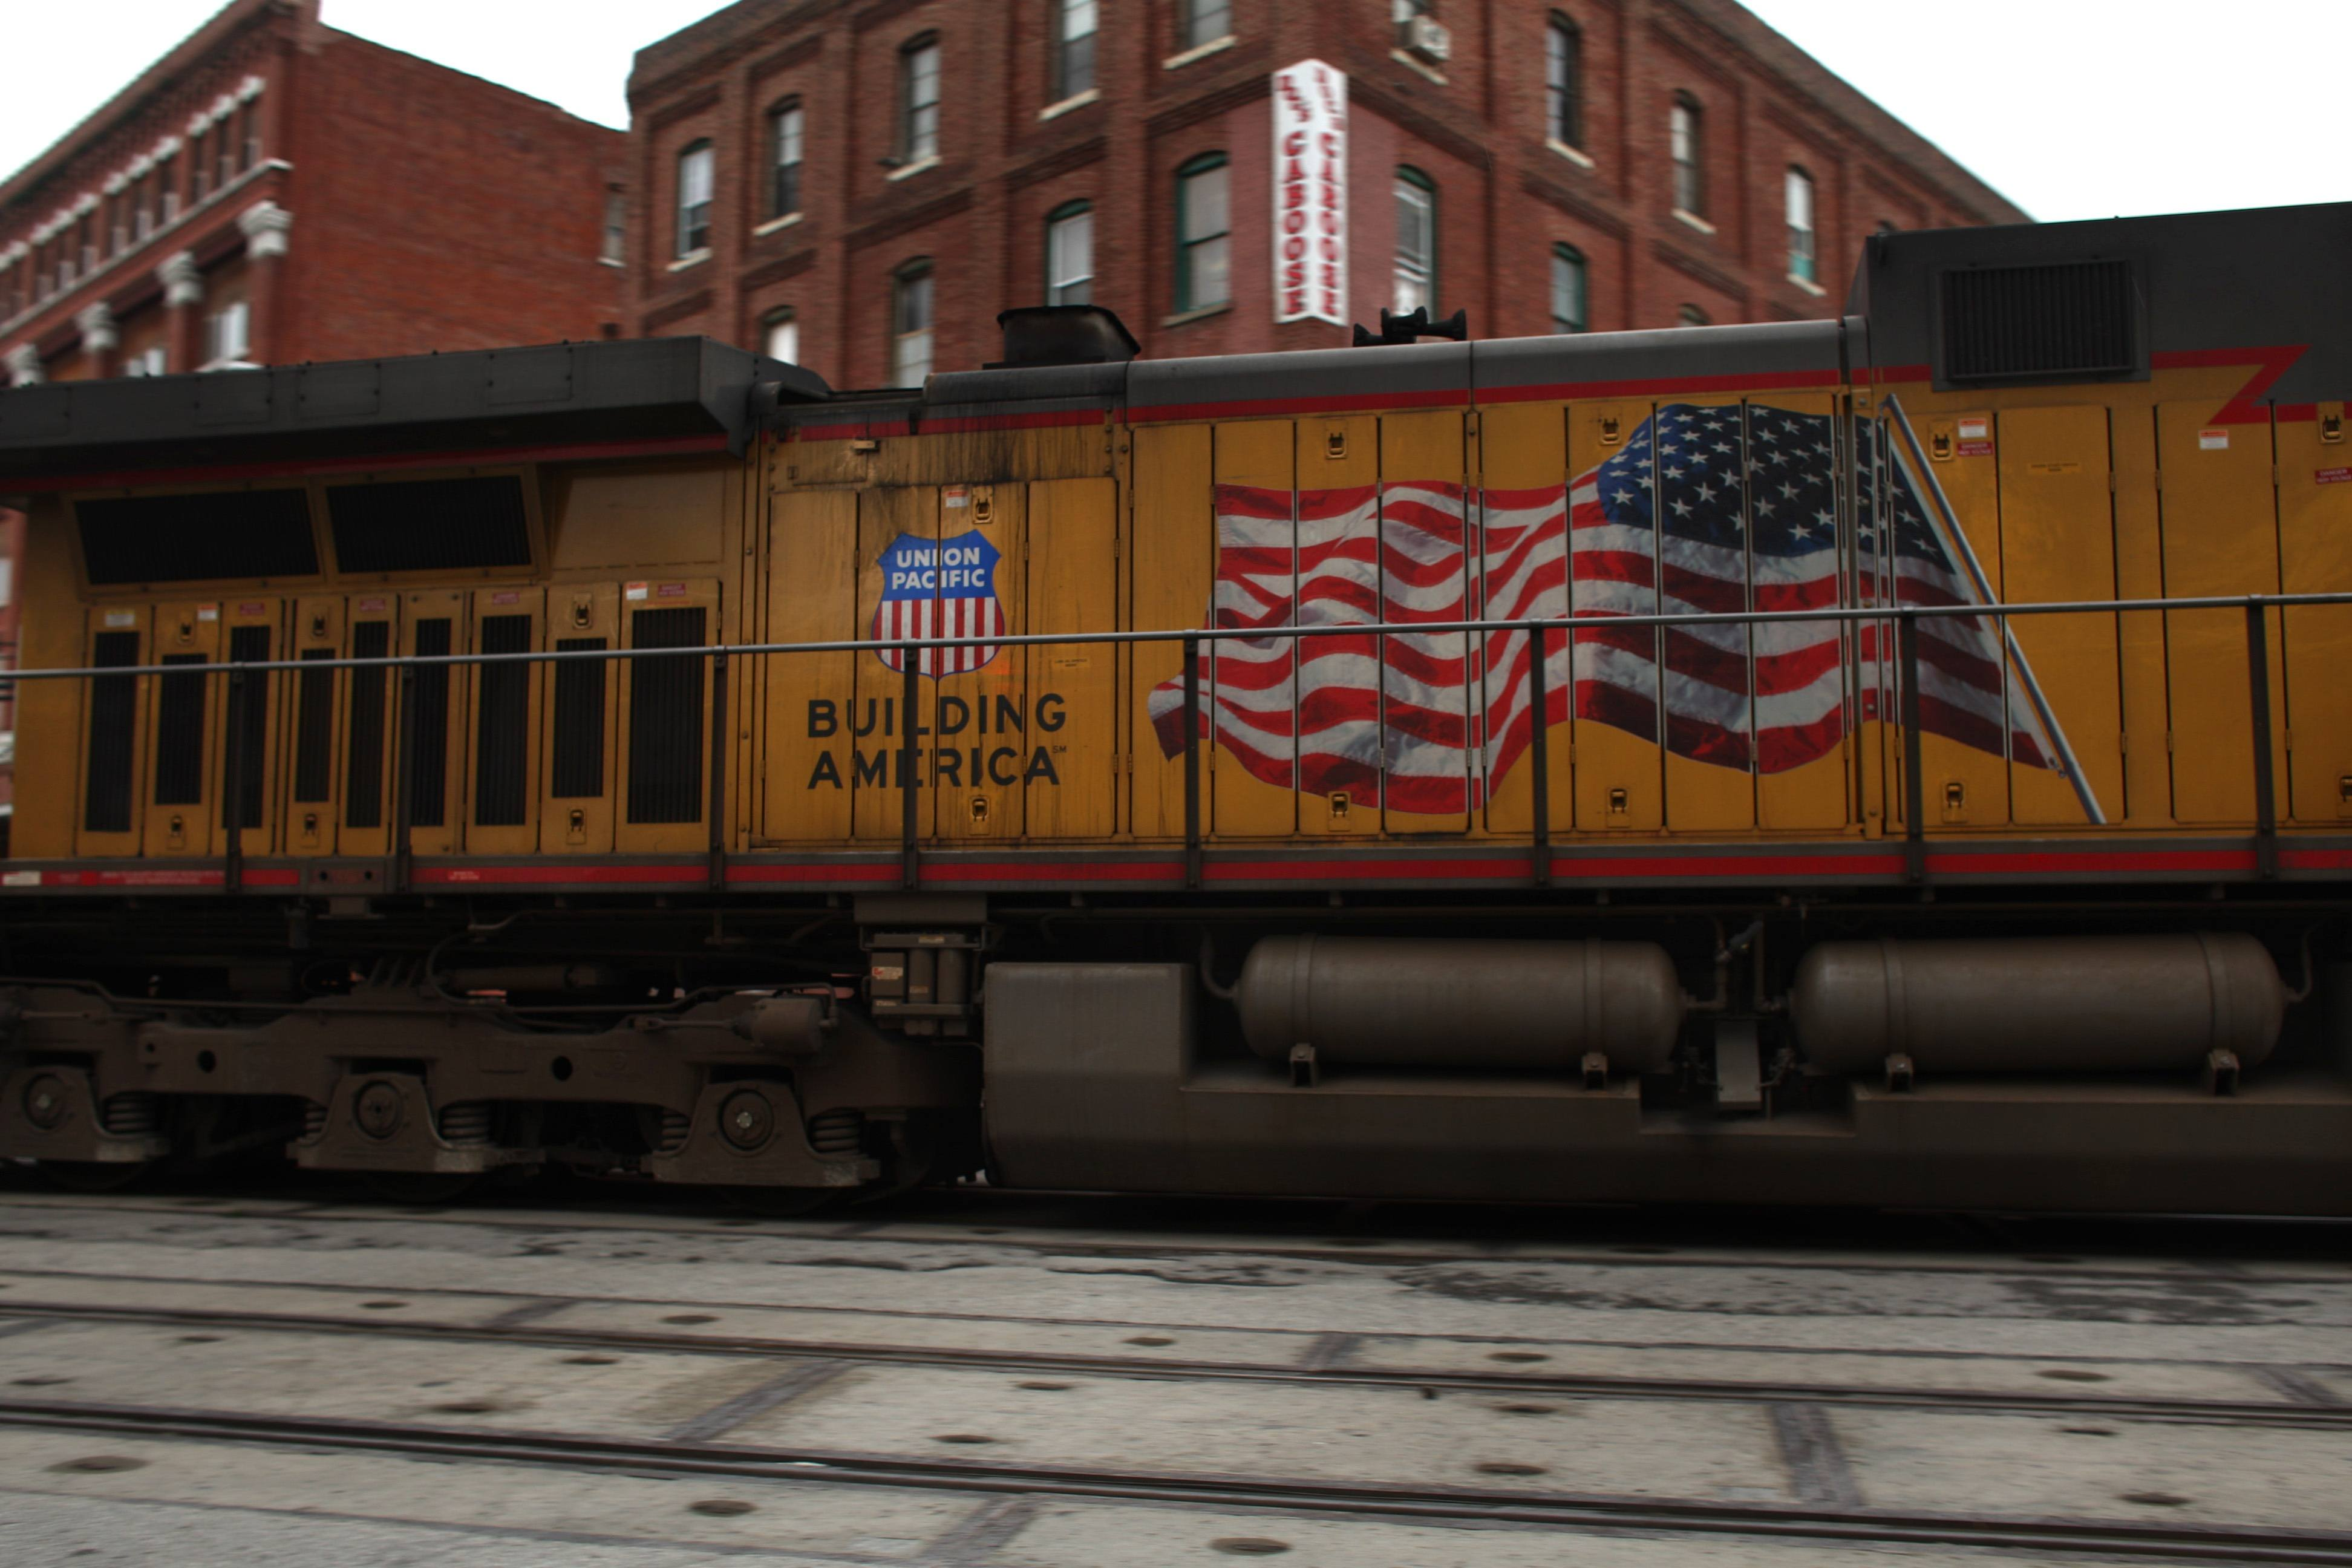 A train passes through an area of old warehouses in Kansas City